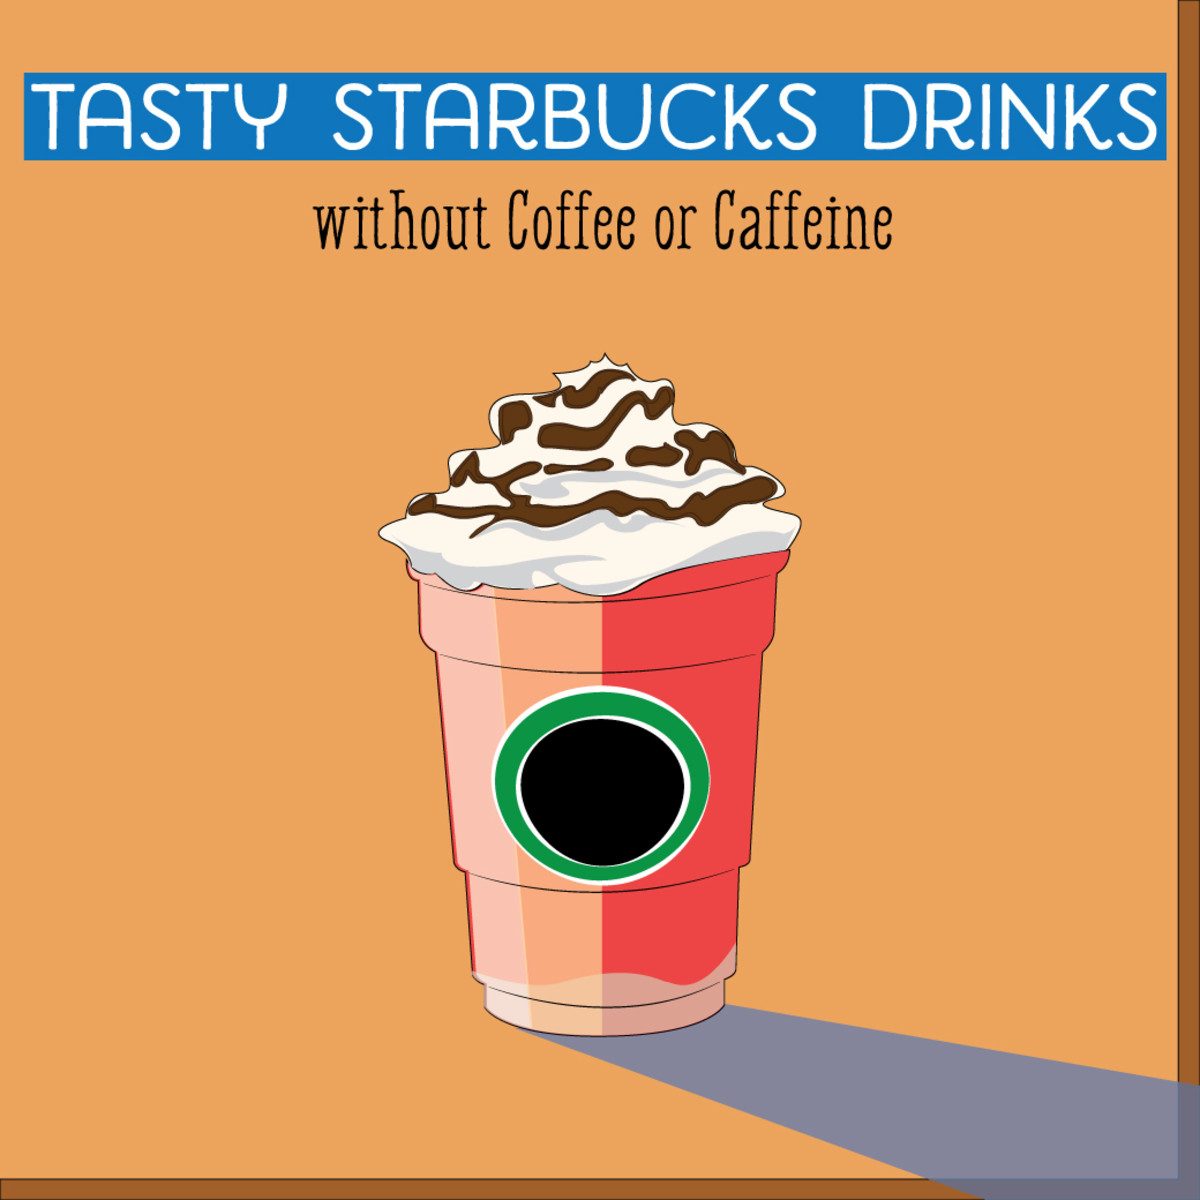 Tasty beverages for the Starbucks lover who prefers drinks without coffee or caffeine.